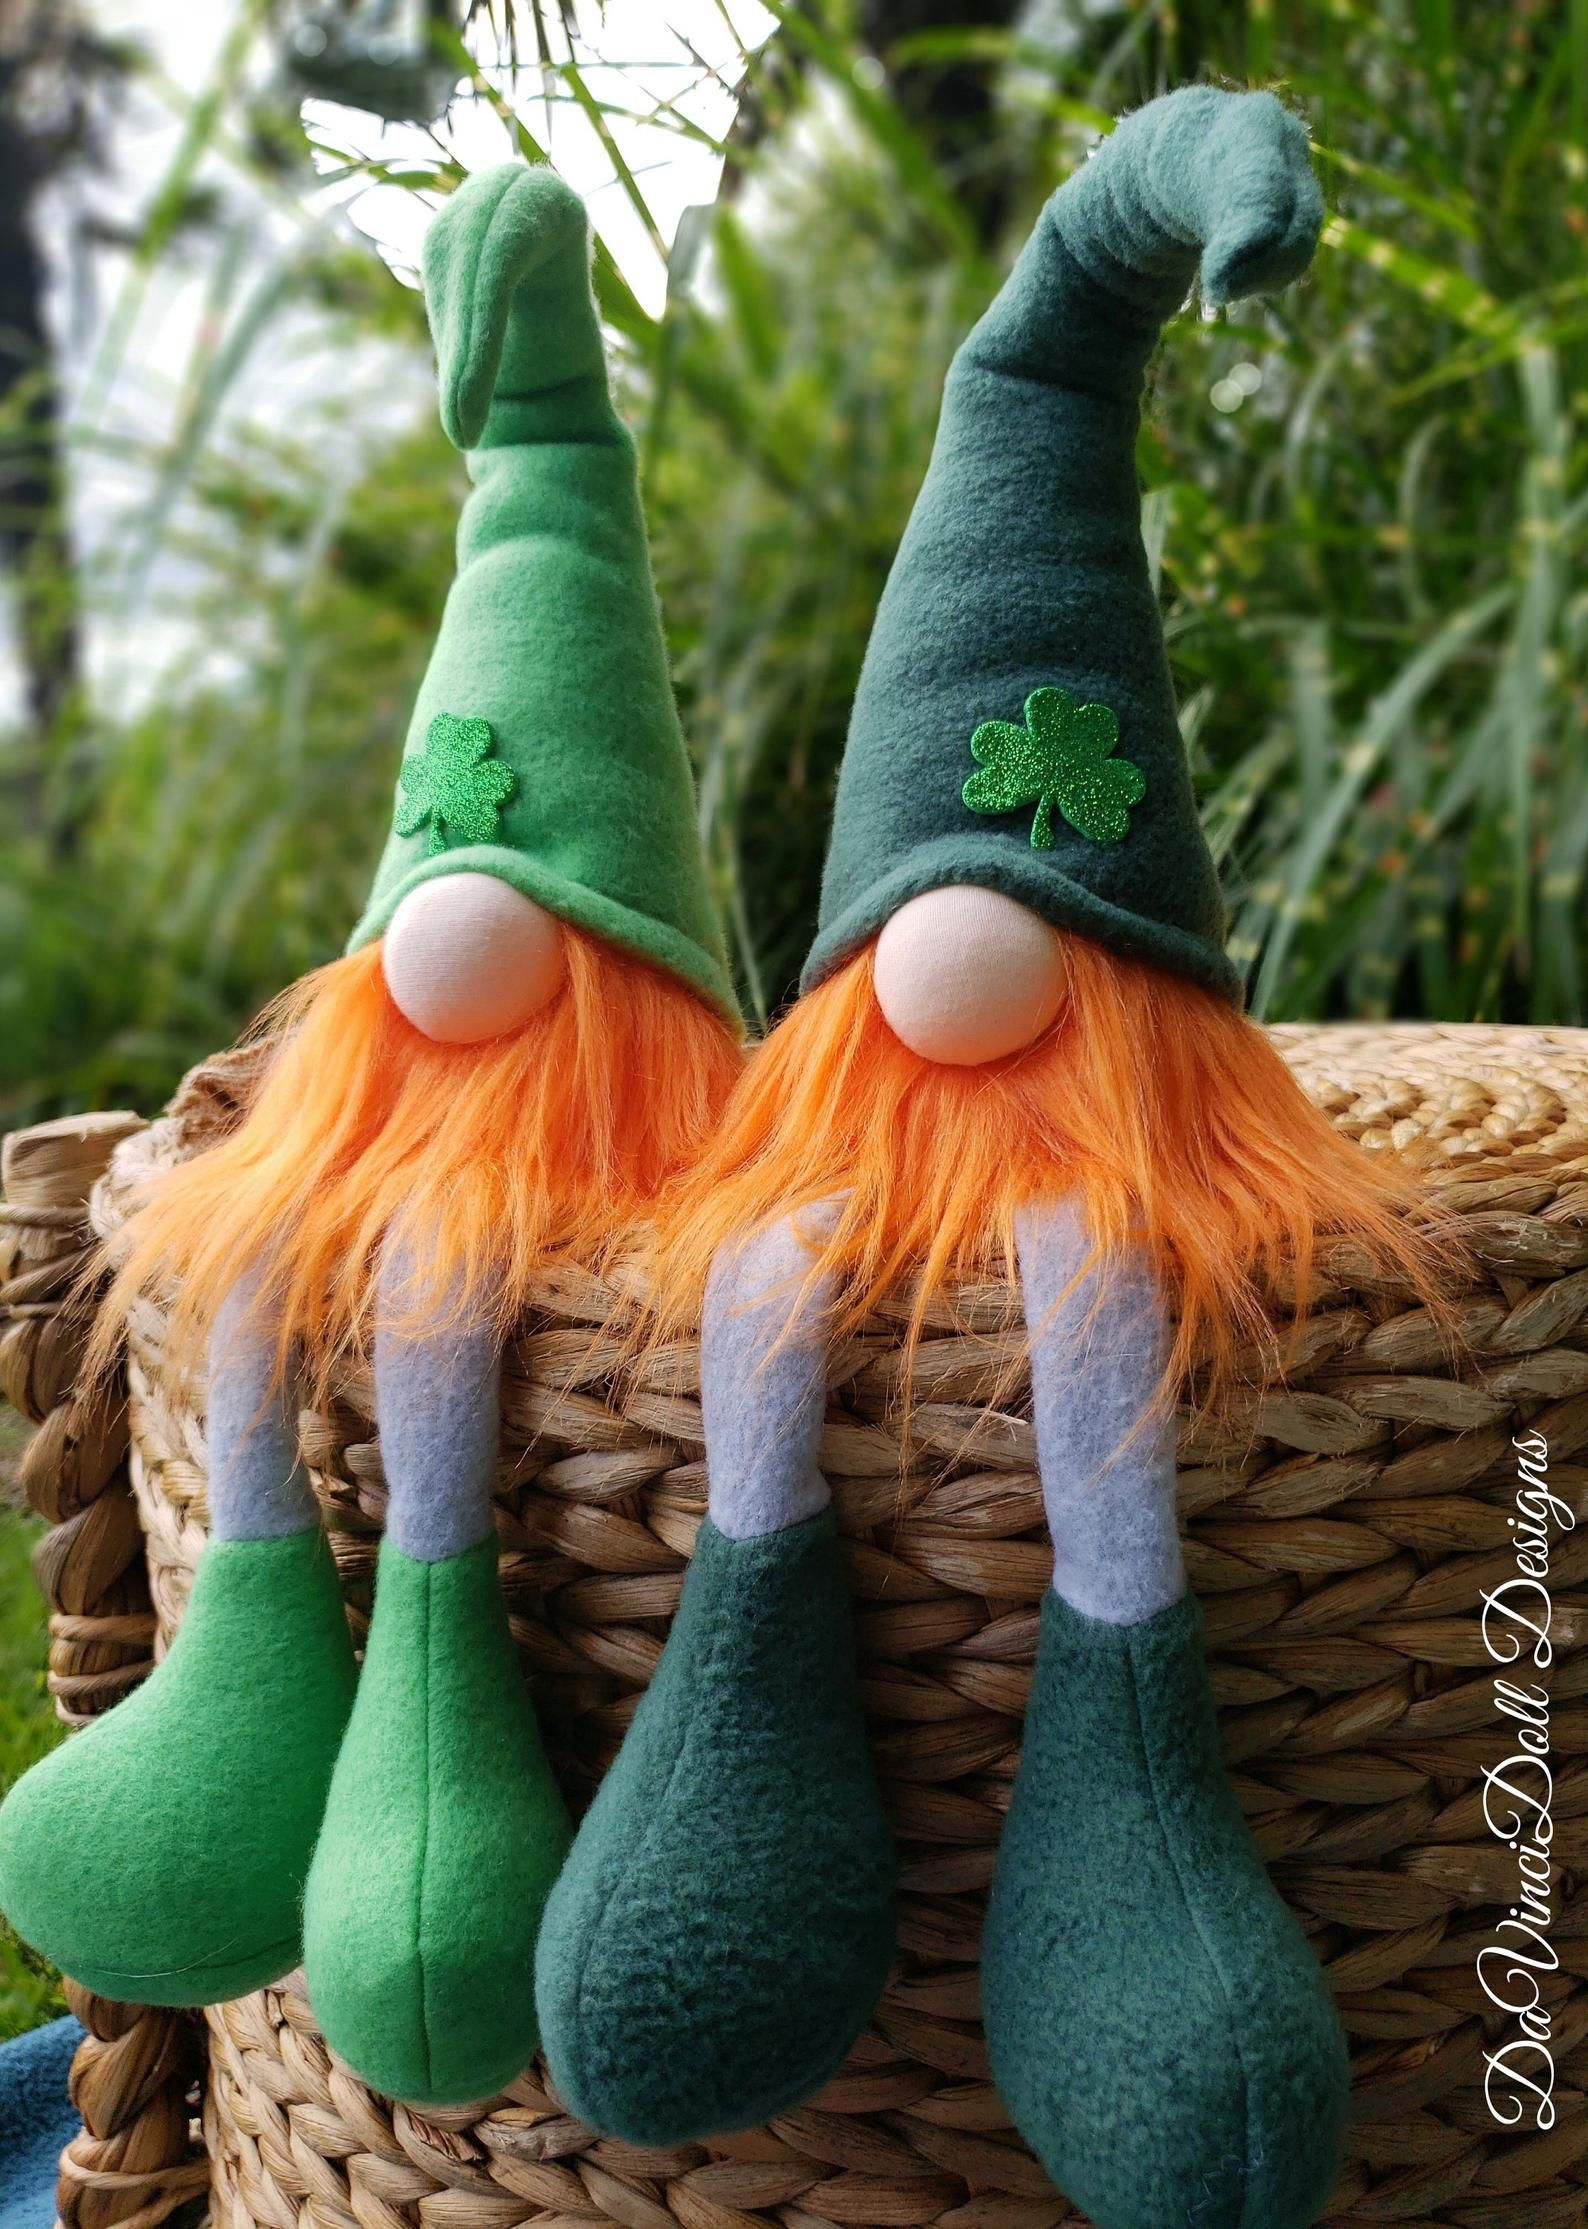 Download St. Patrick's Day Gnome Sitting Nisse tomte | Gnomes ...